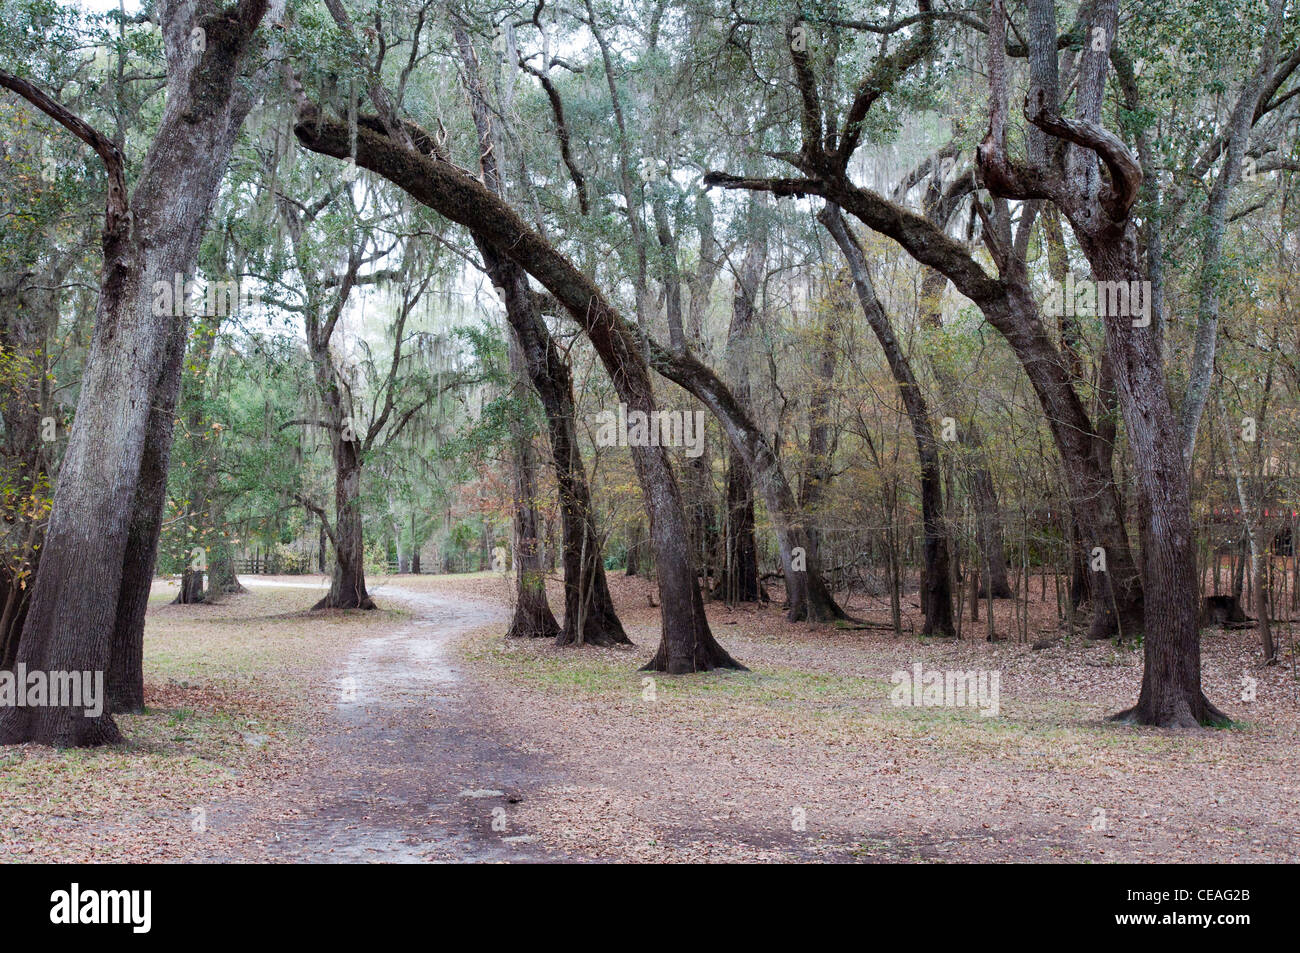 Living oaks near Santa Fe river, Quercus virginiana, Florida, United States, USA - Stock Image